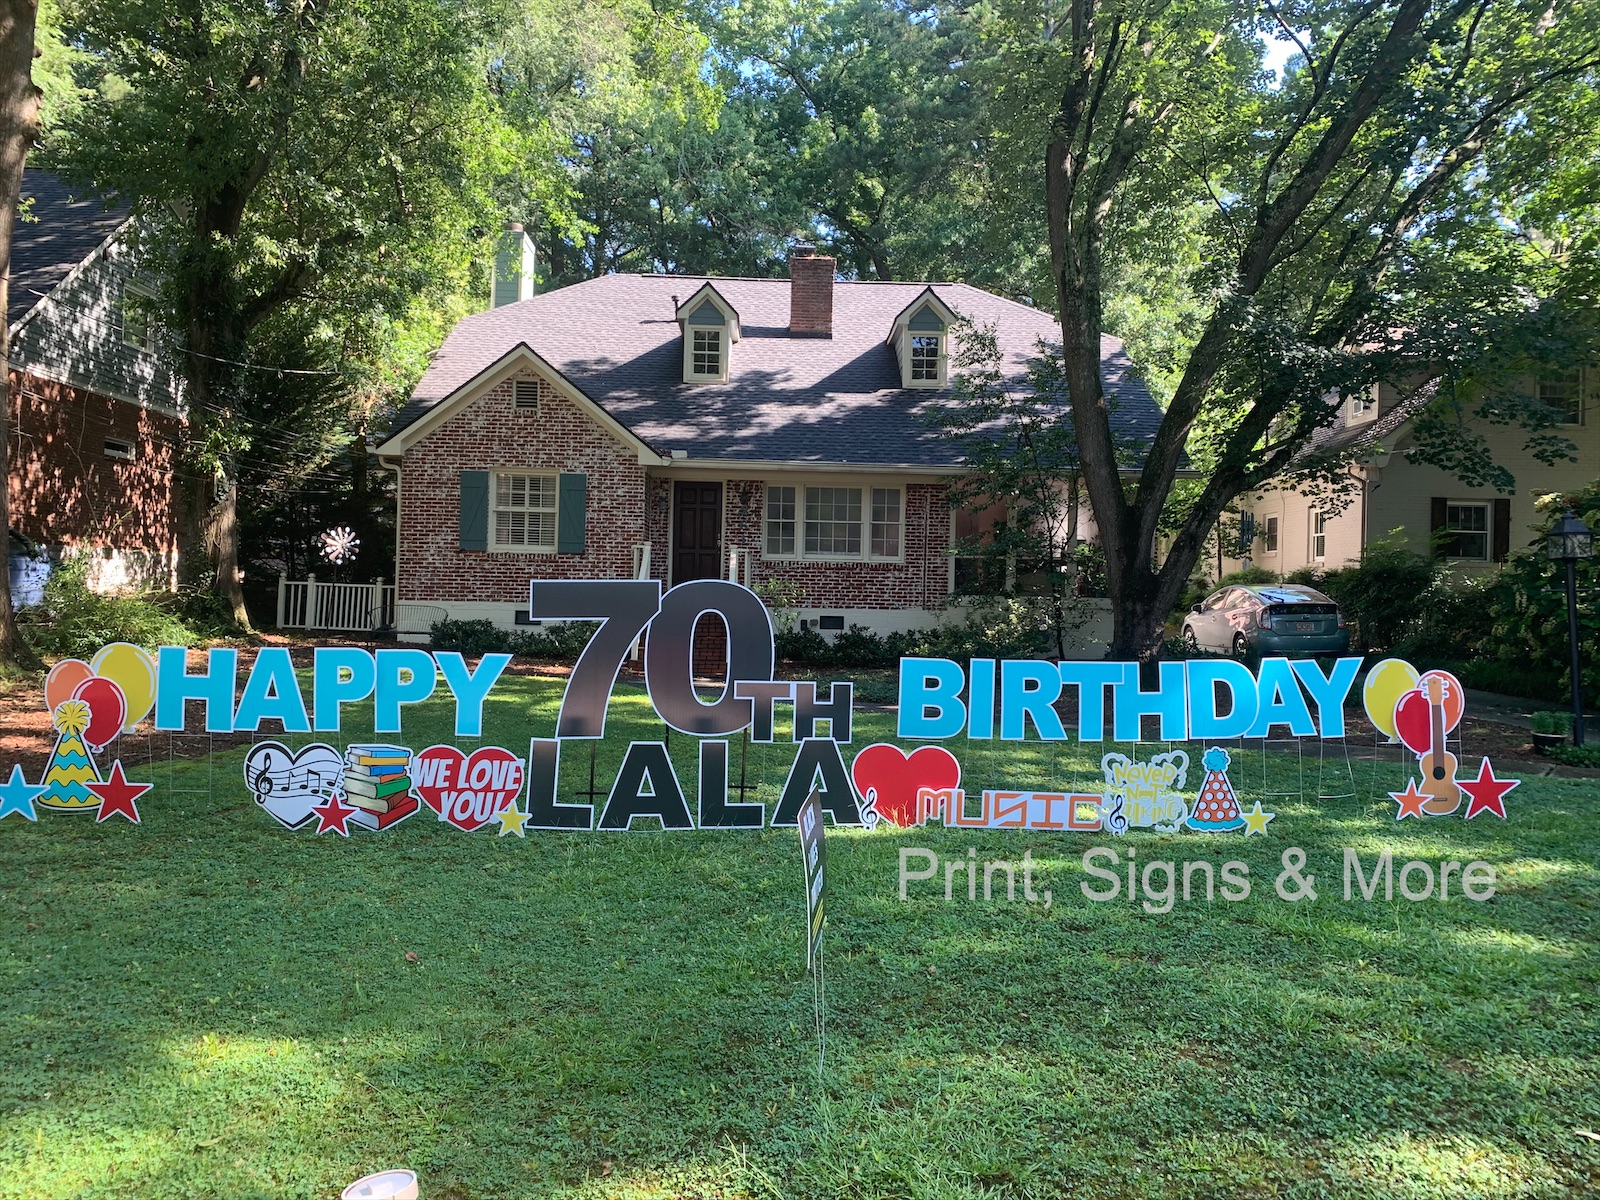 birthday yard sign for 70th birthday greeting